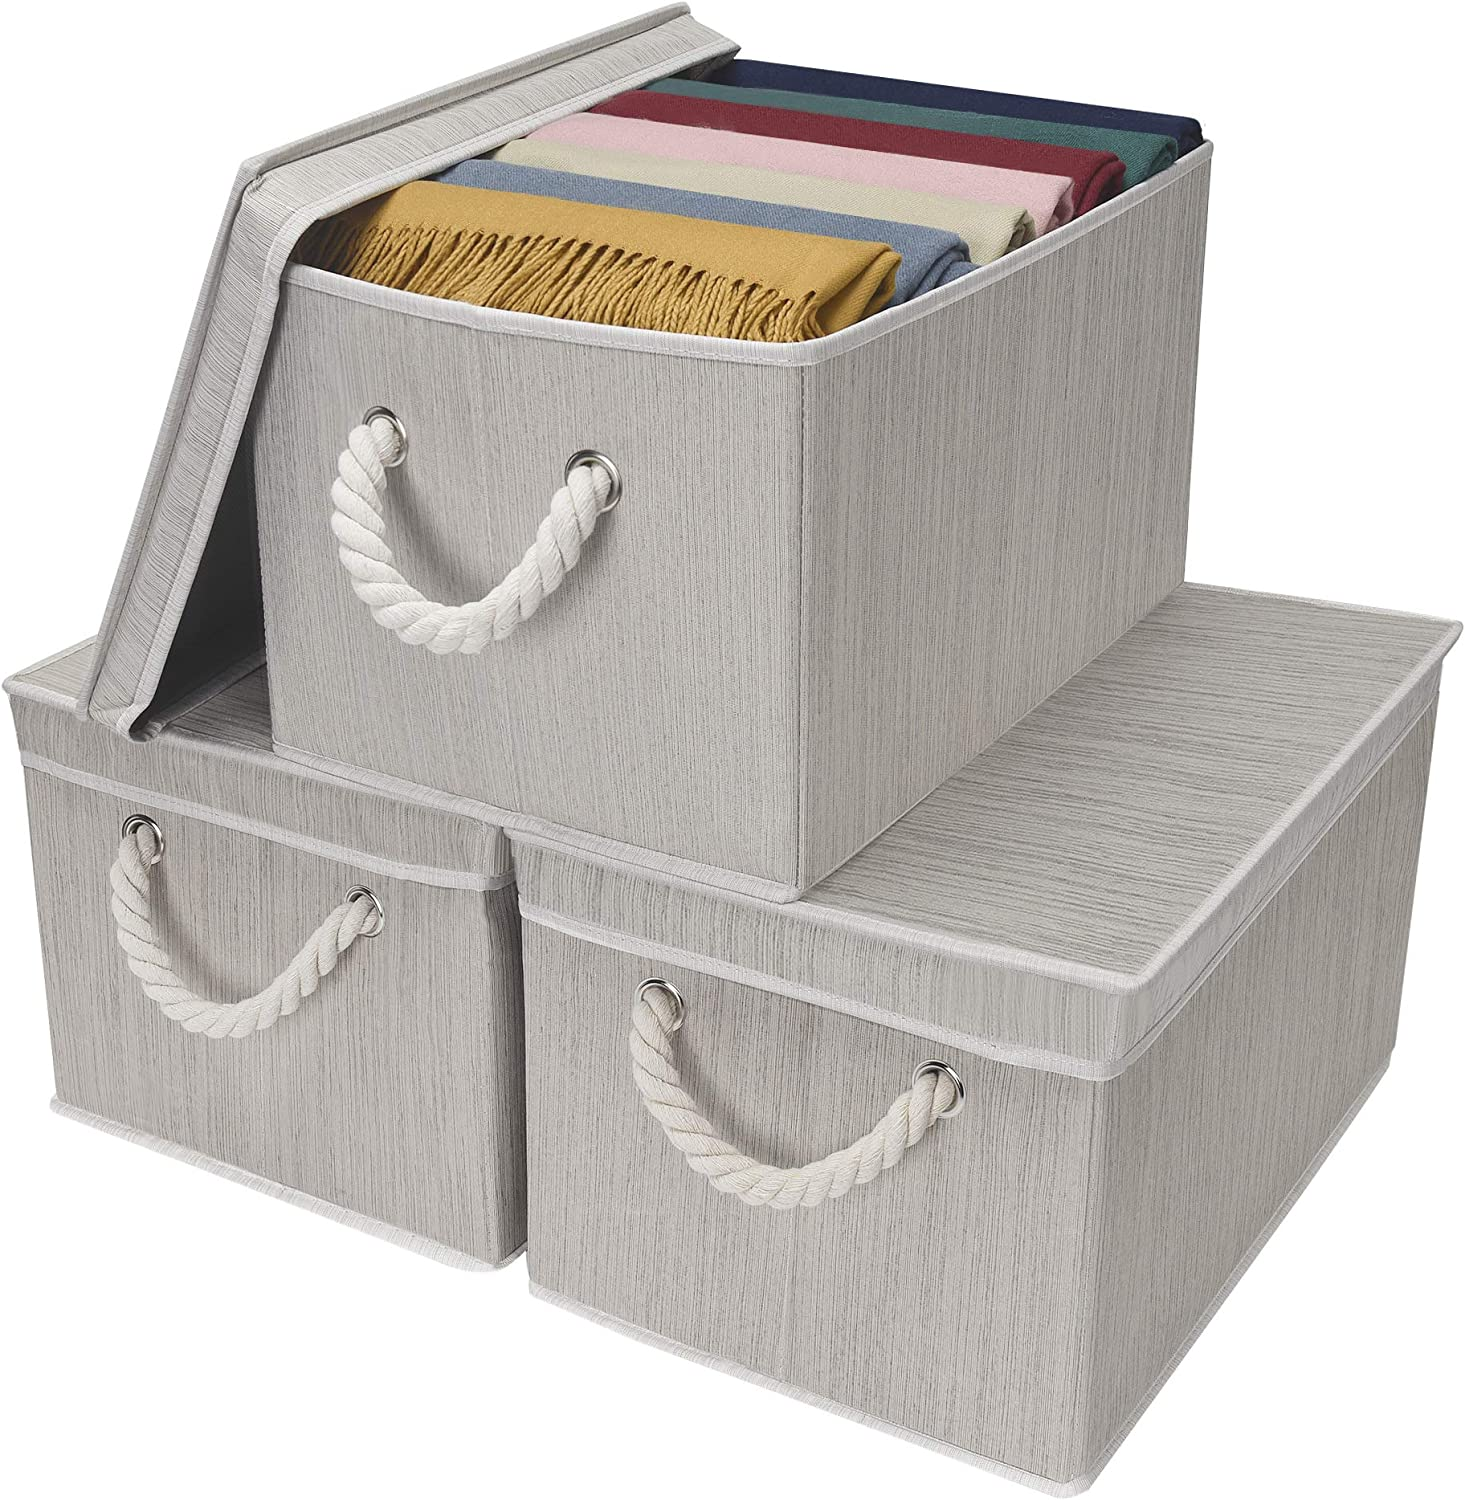 StorageWorks At the price 32L Decorative Storage Bins Shelves Outlet SALE for Ba